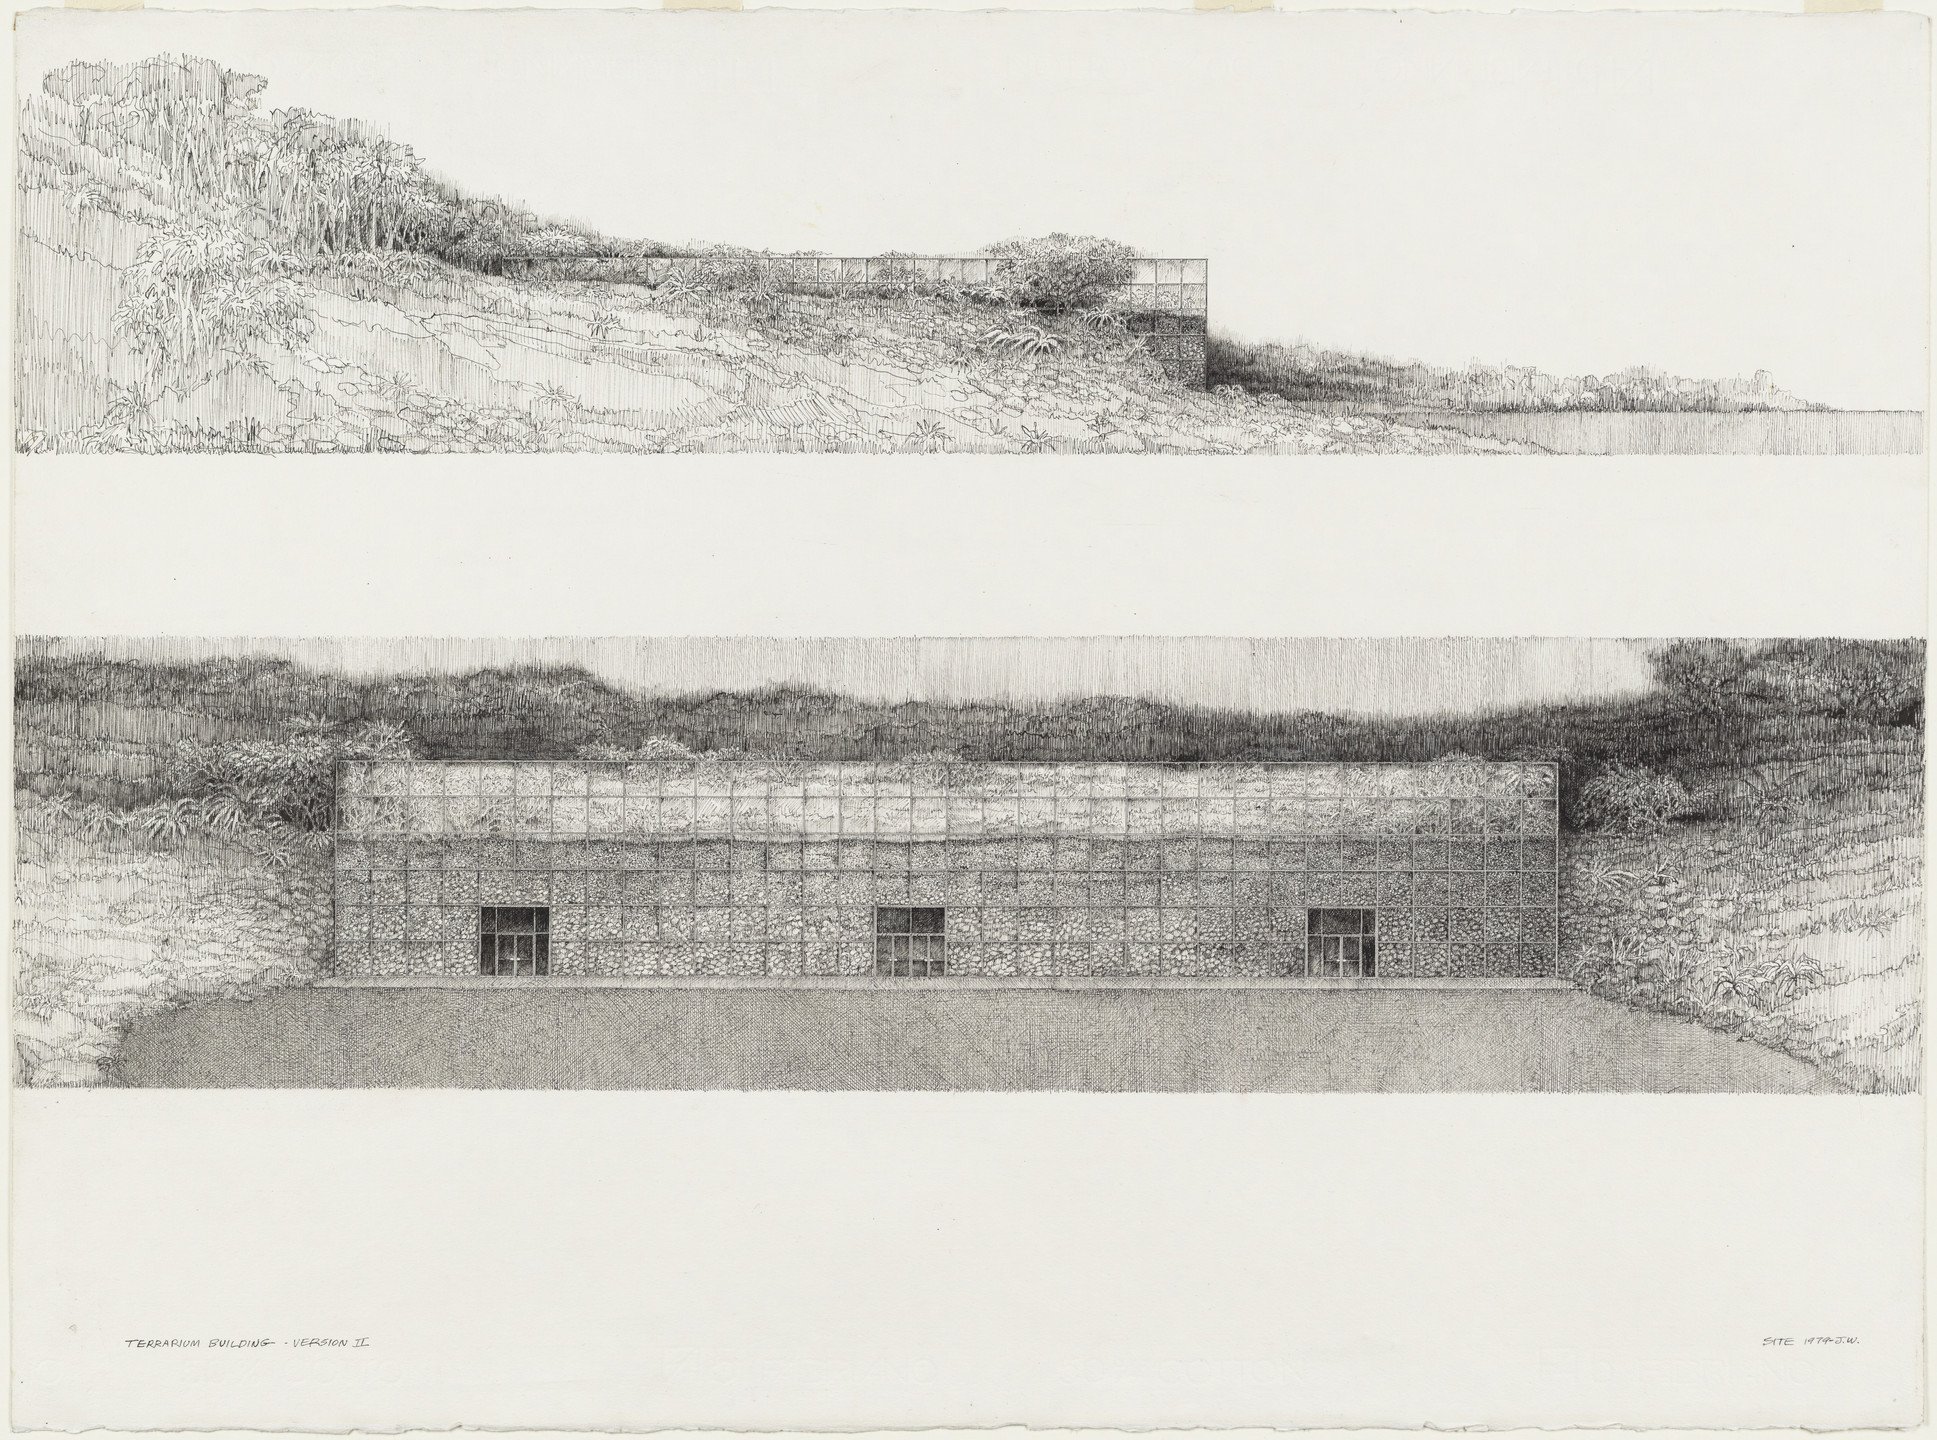 SITE, James Wines. Terrarium Showroom, Elevations. 1979